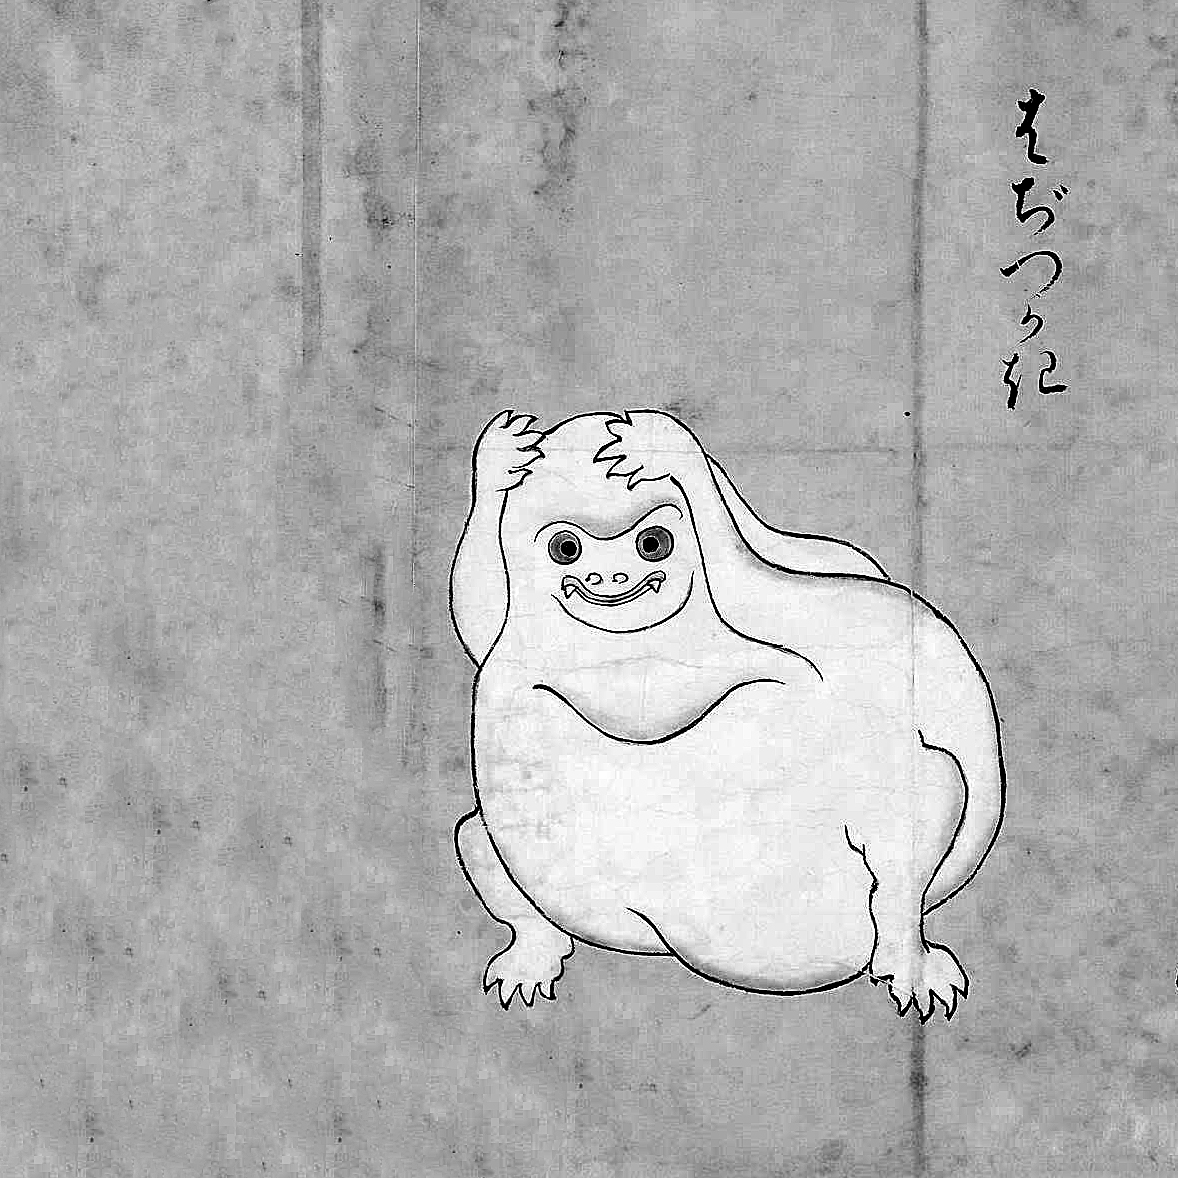 Hajikkaki (はぢっかき) has a round white body with short arms and legs.